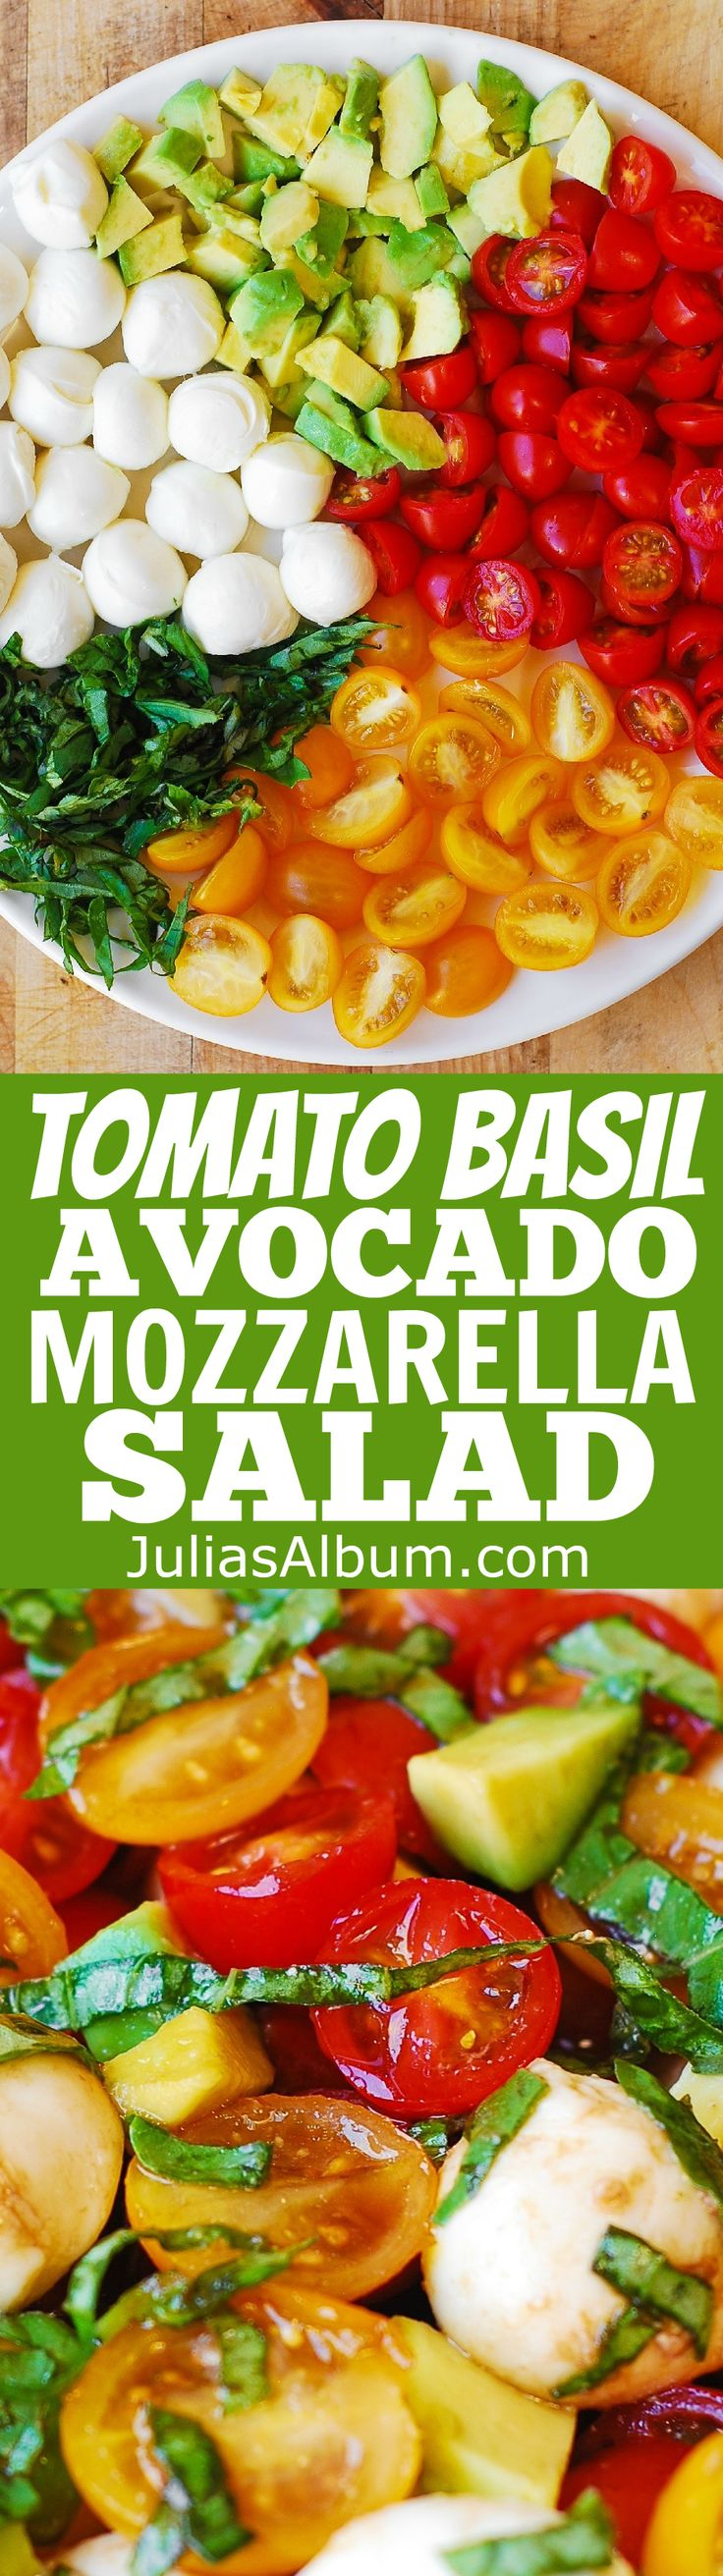 Tomato Basil Avocado Mozzarella Salad with Balsamic Dressing - #Mediterranean…